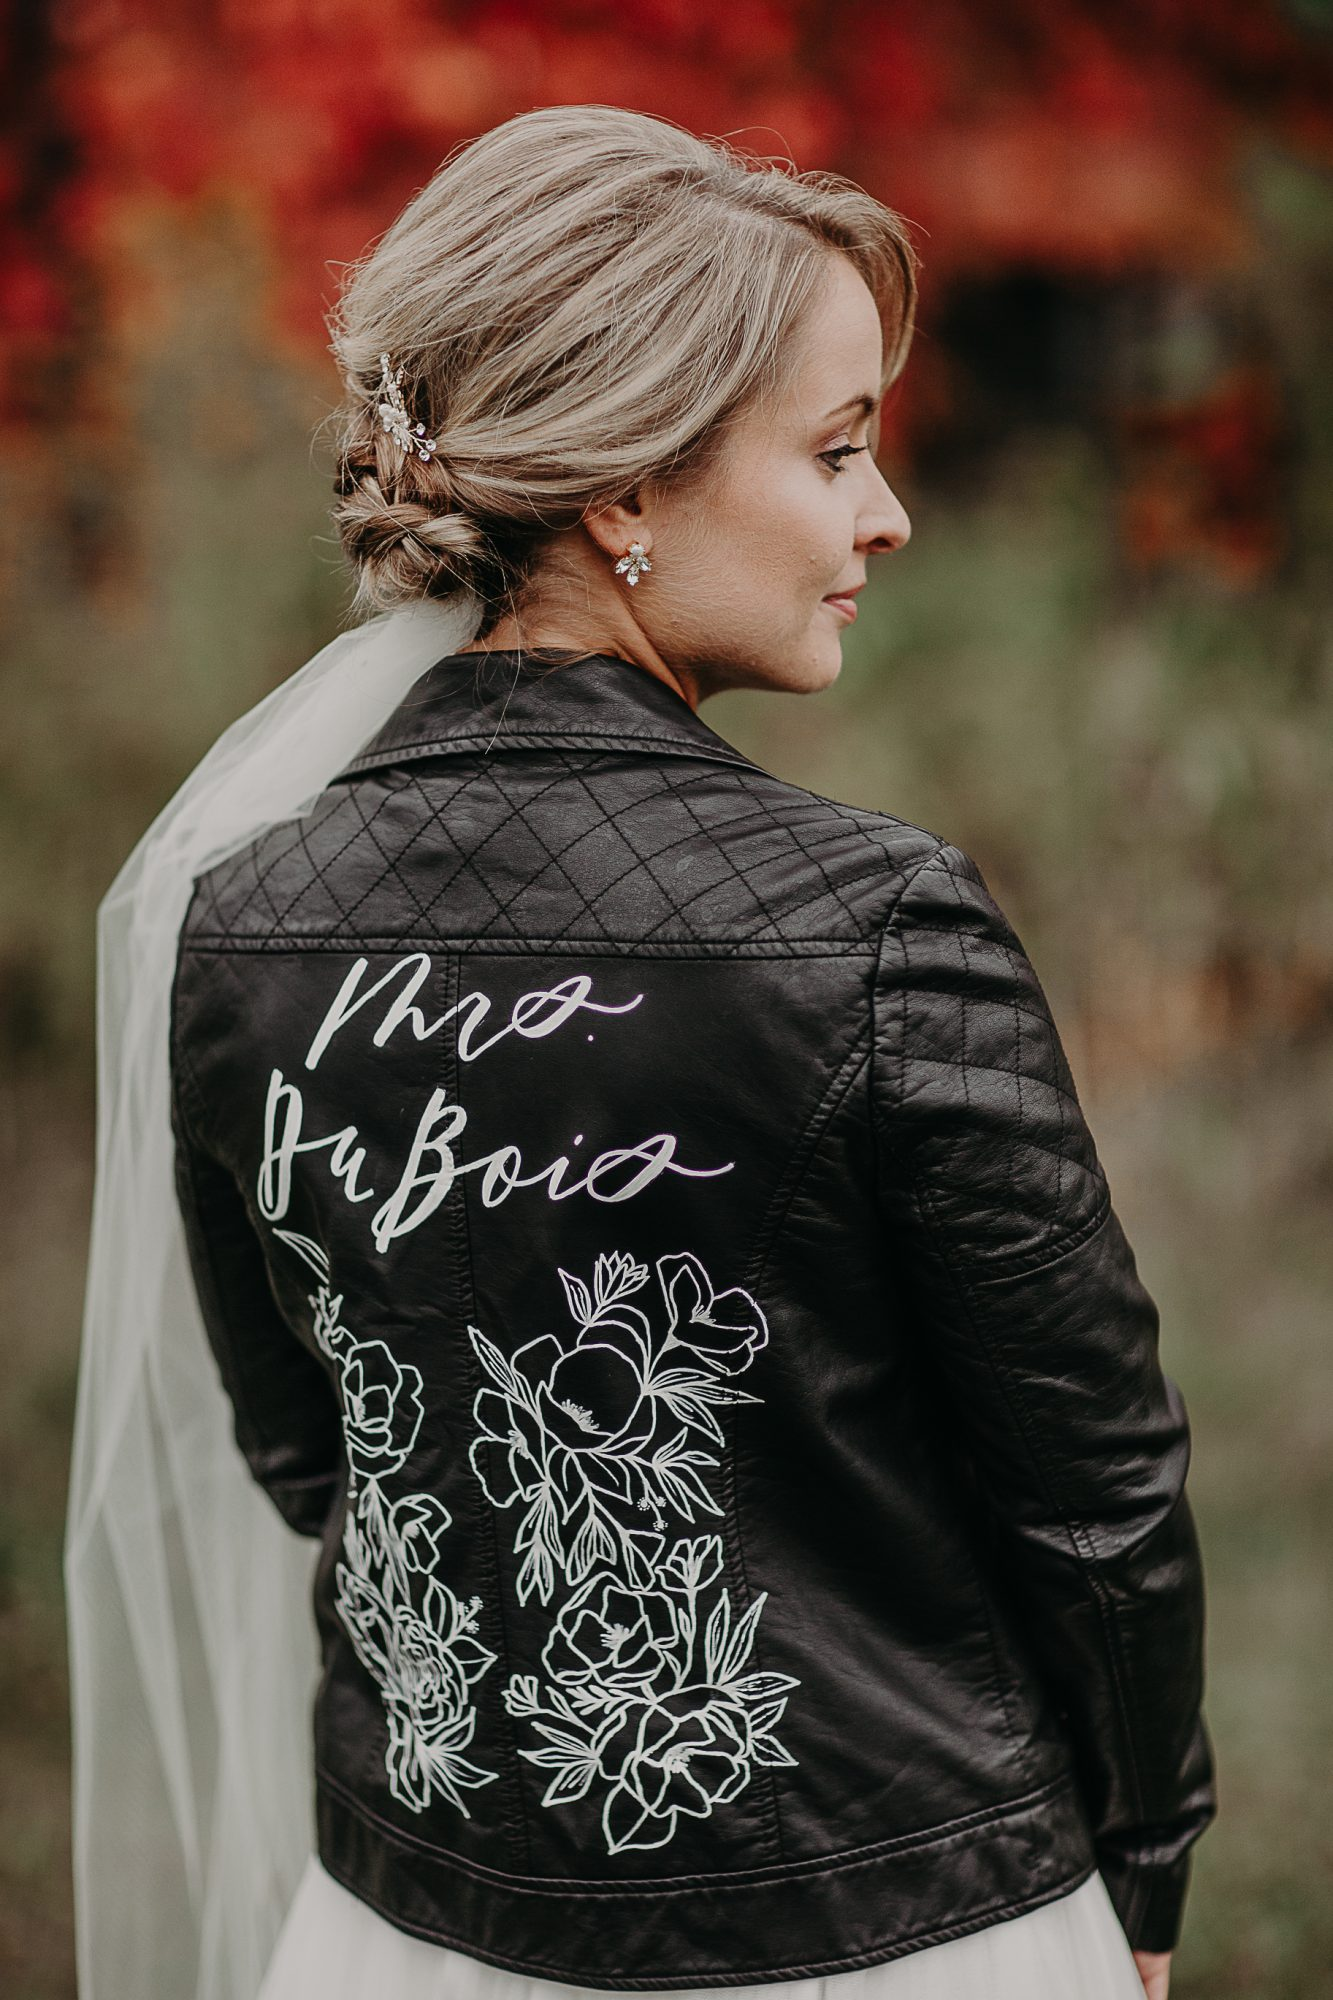 leather jacket with painted picture and name